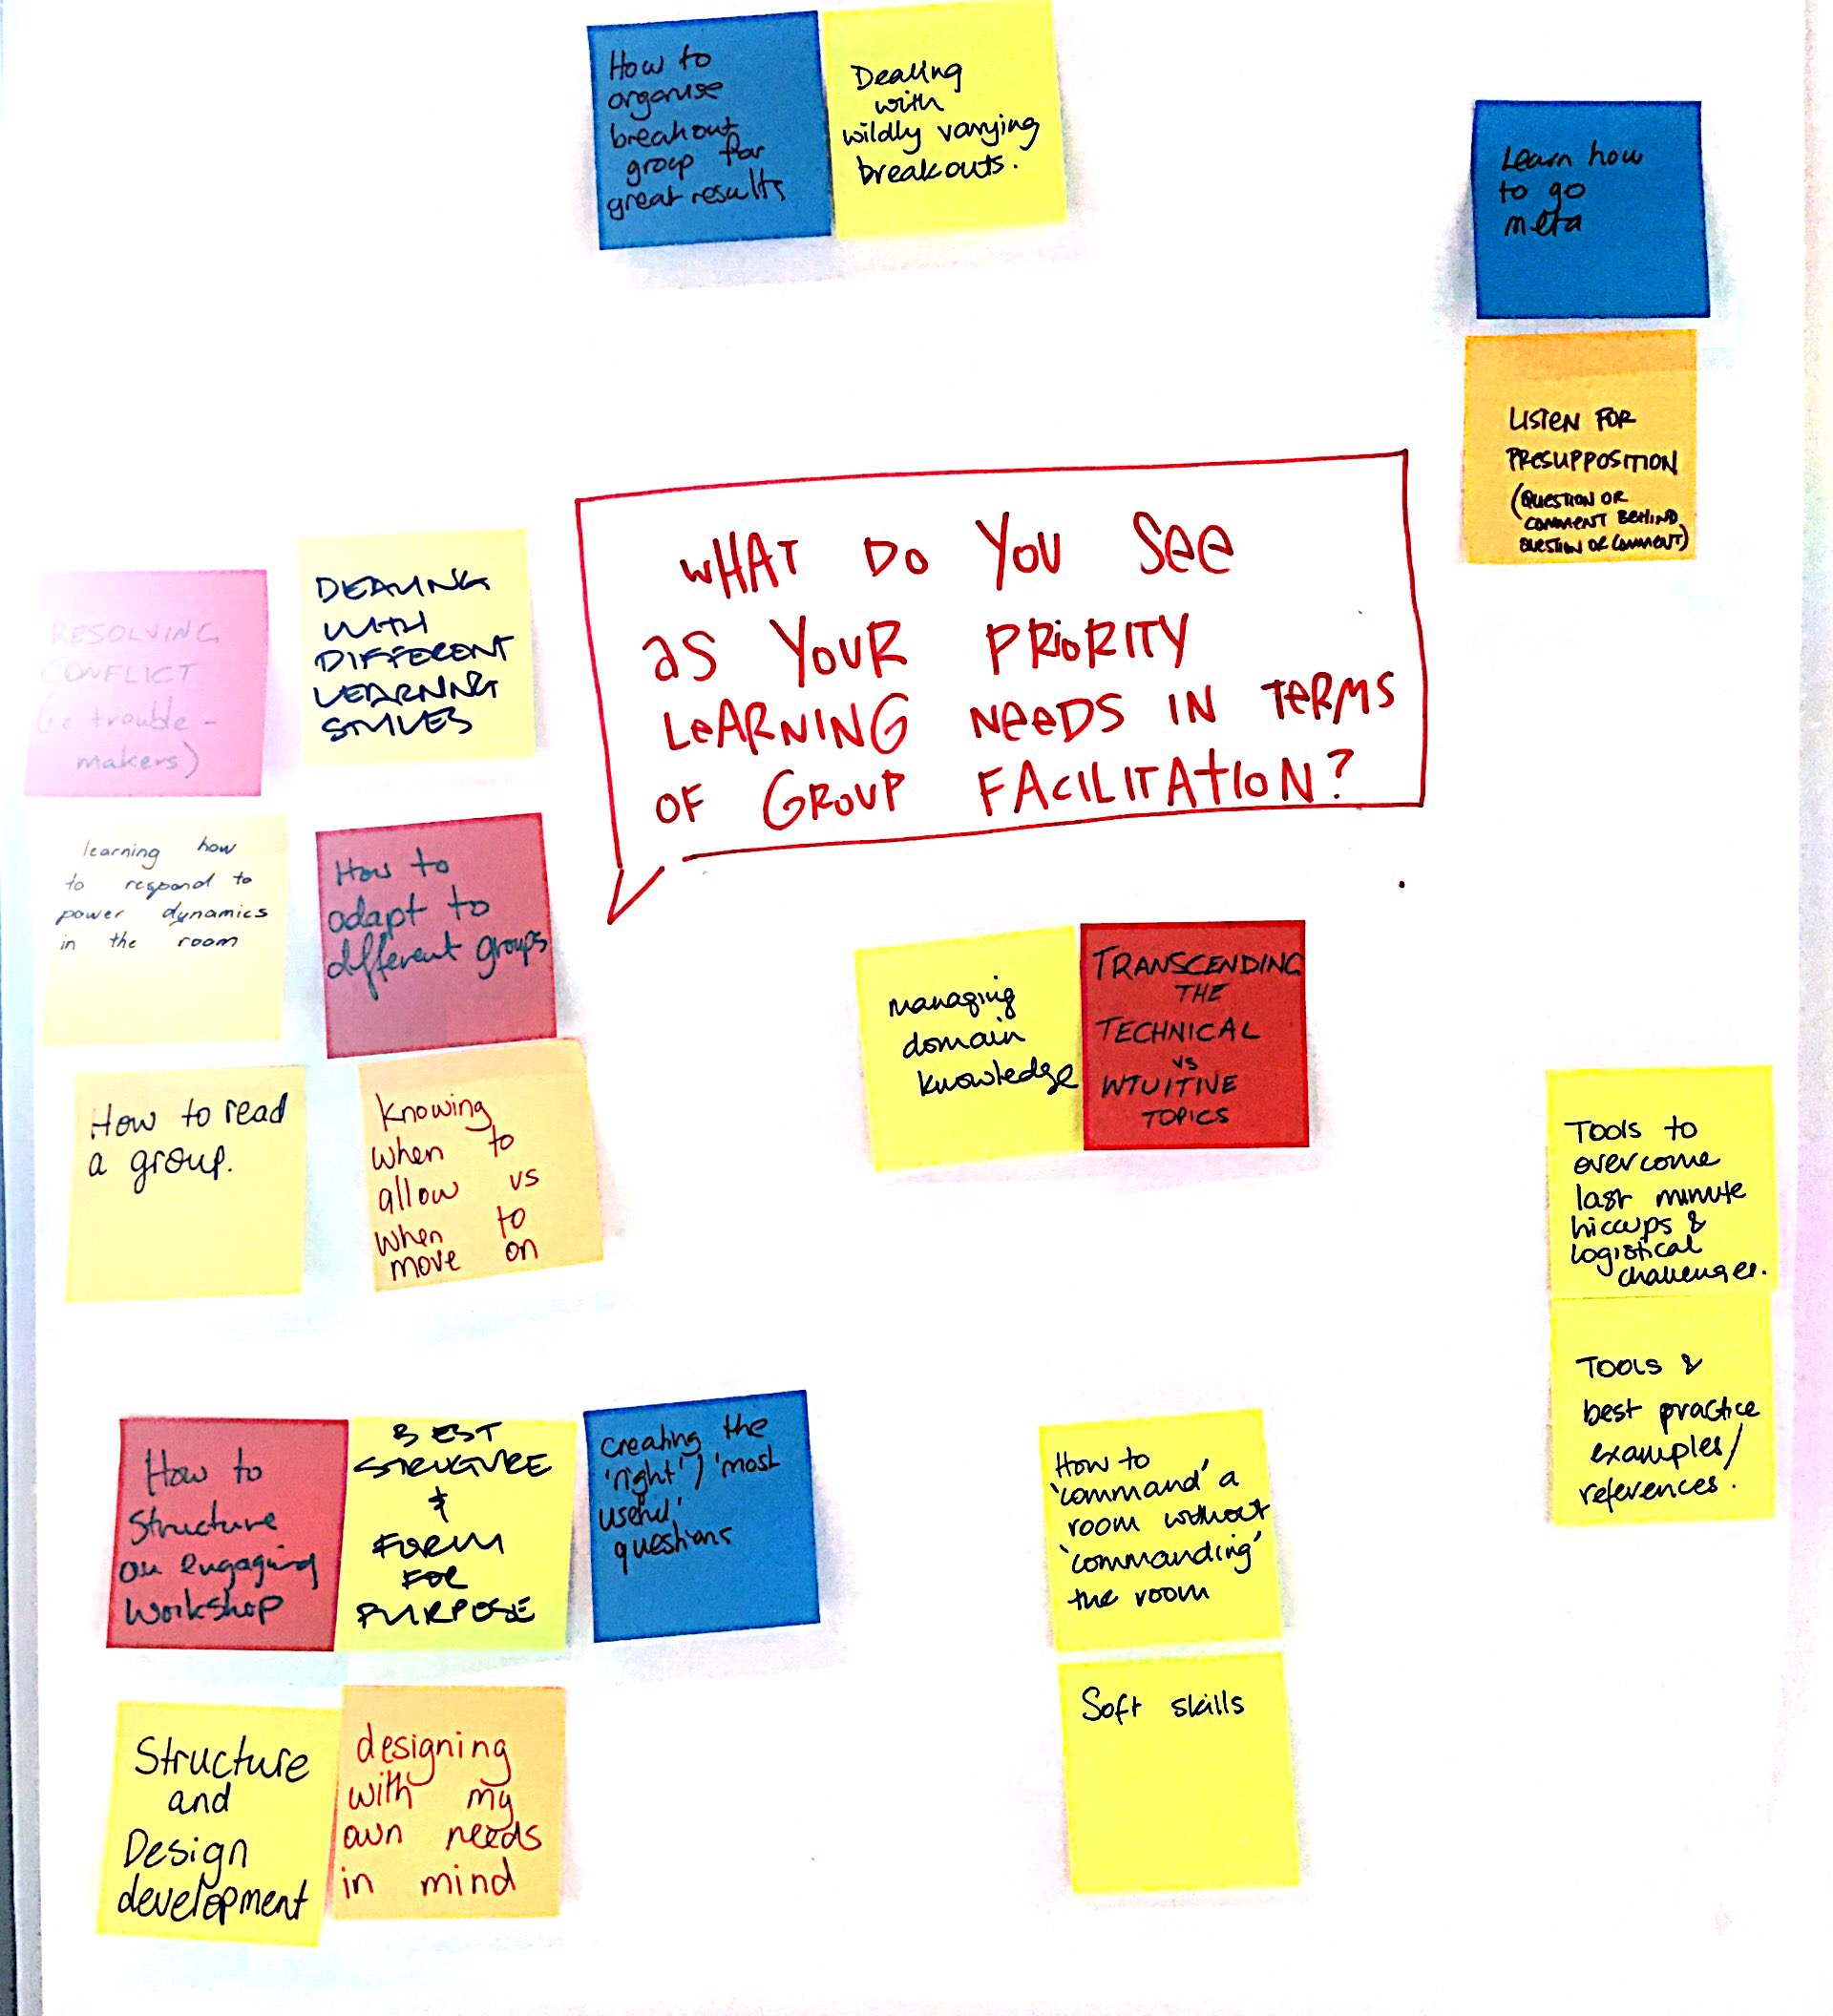 Your Facilitation leaning needs?